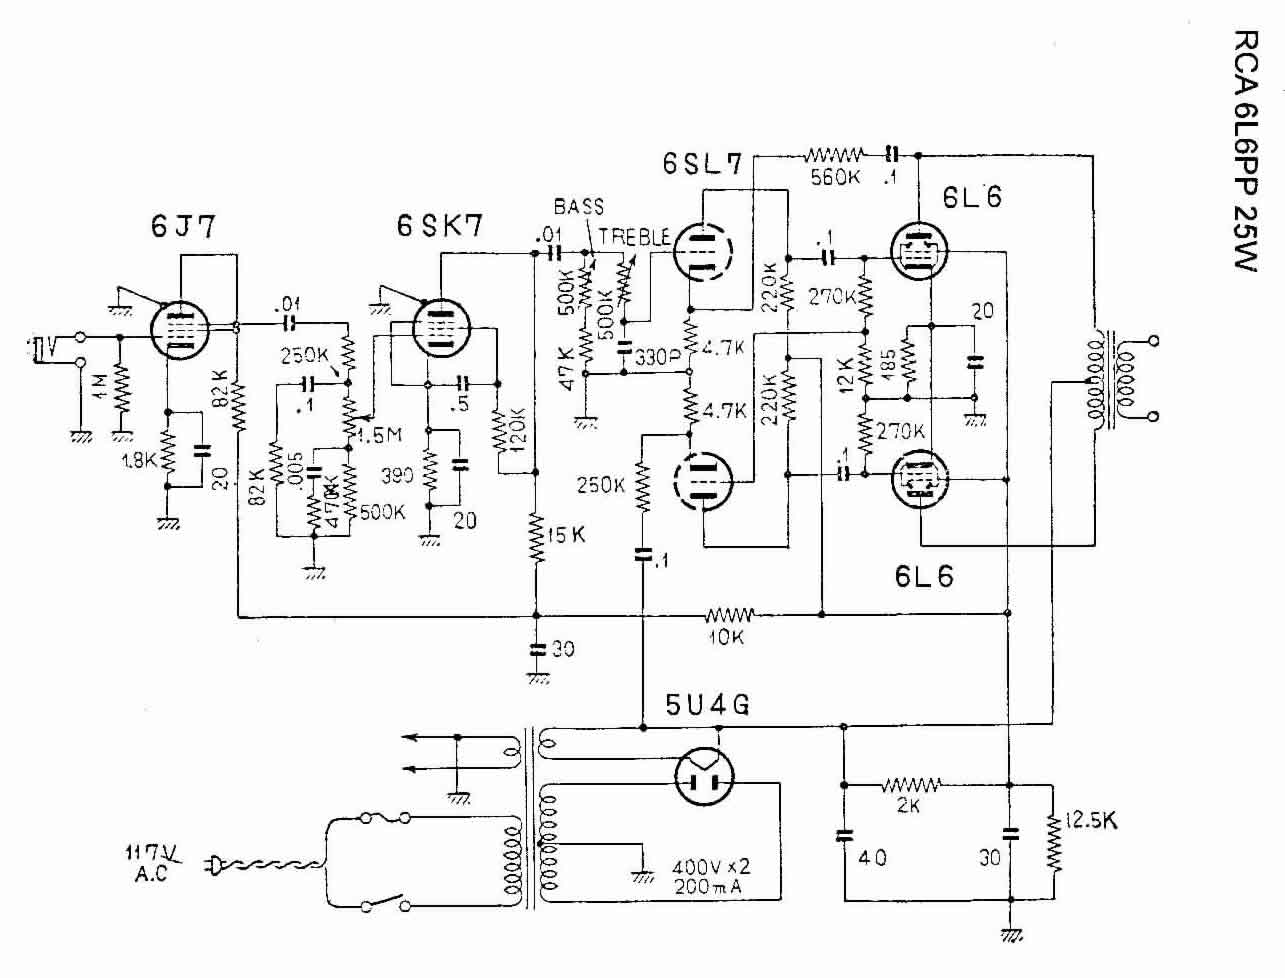 2007 yamaha raptor 700 wiring diagram s video cable 2006 schematic best library vacuum imageresizertool com grizzly 700r